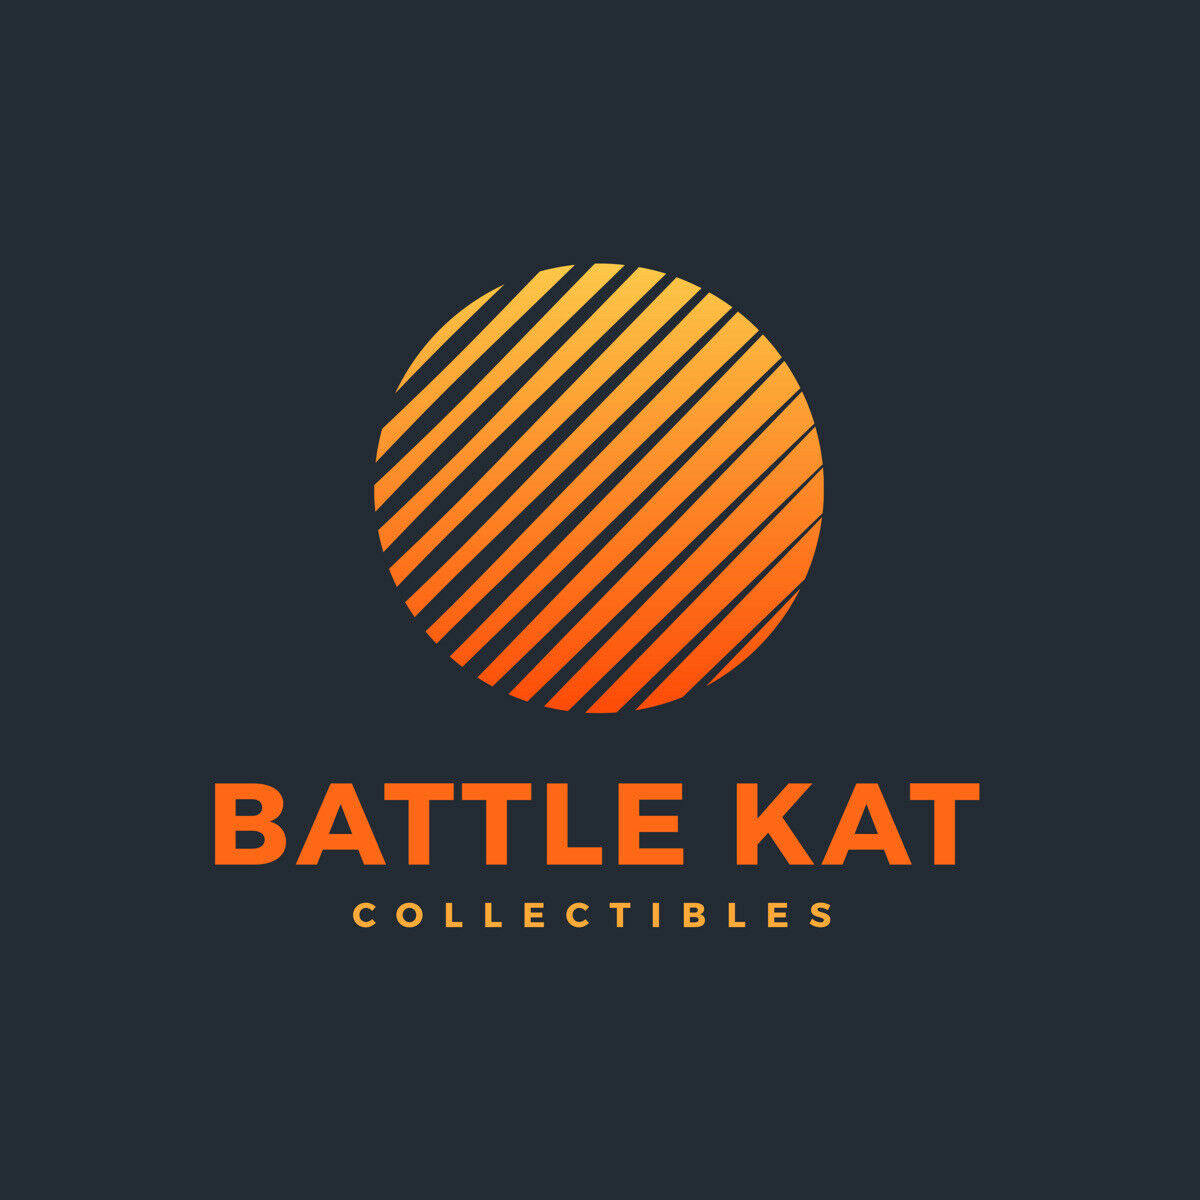 Battle Kat Collectibles